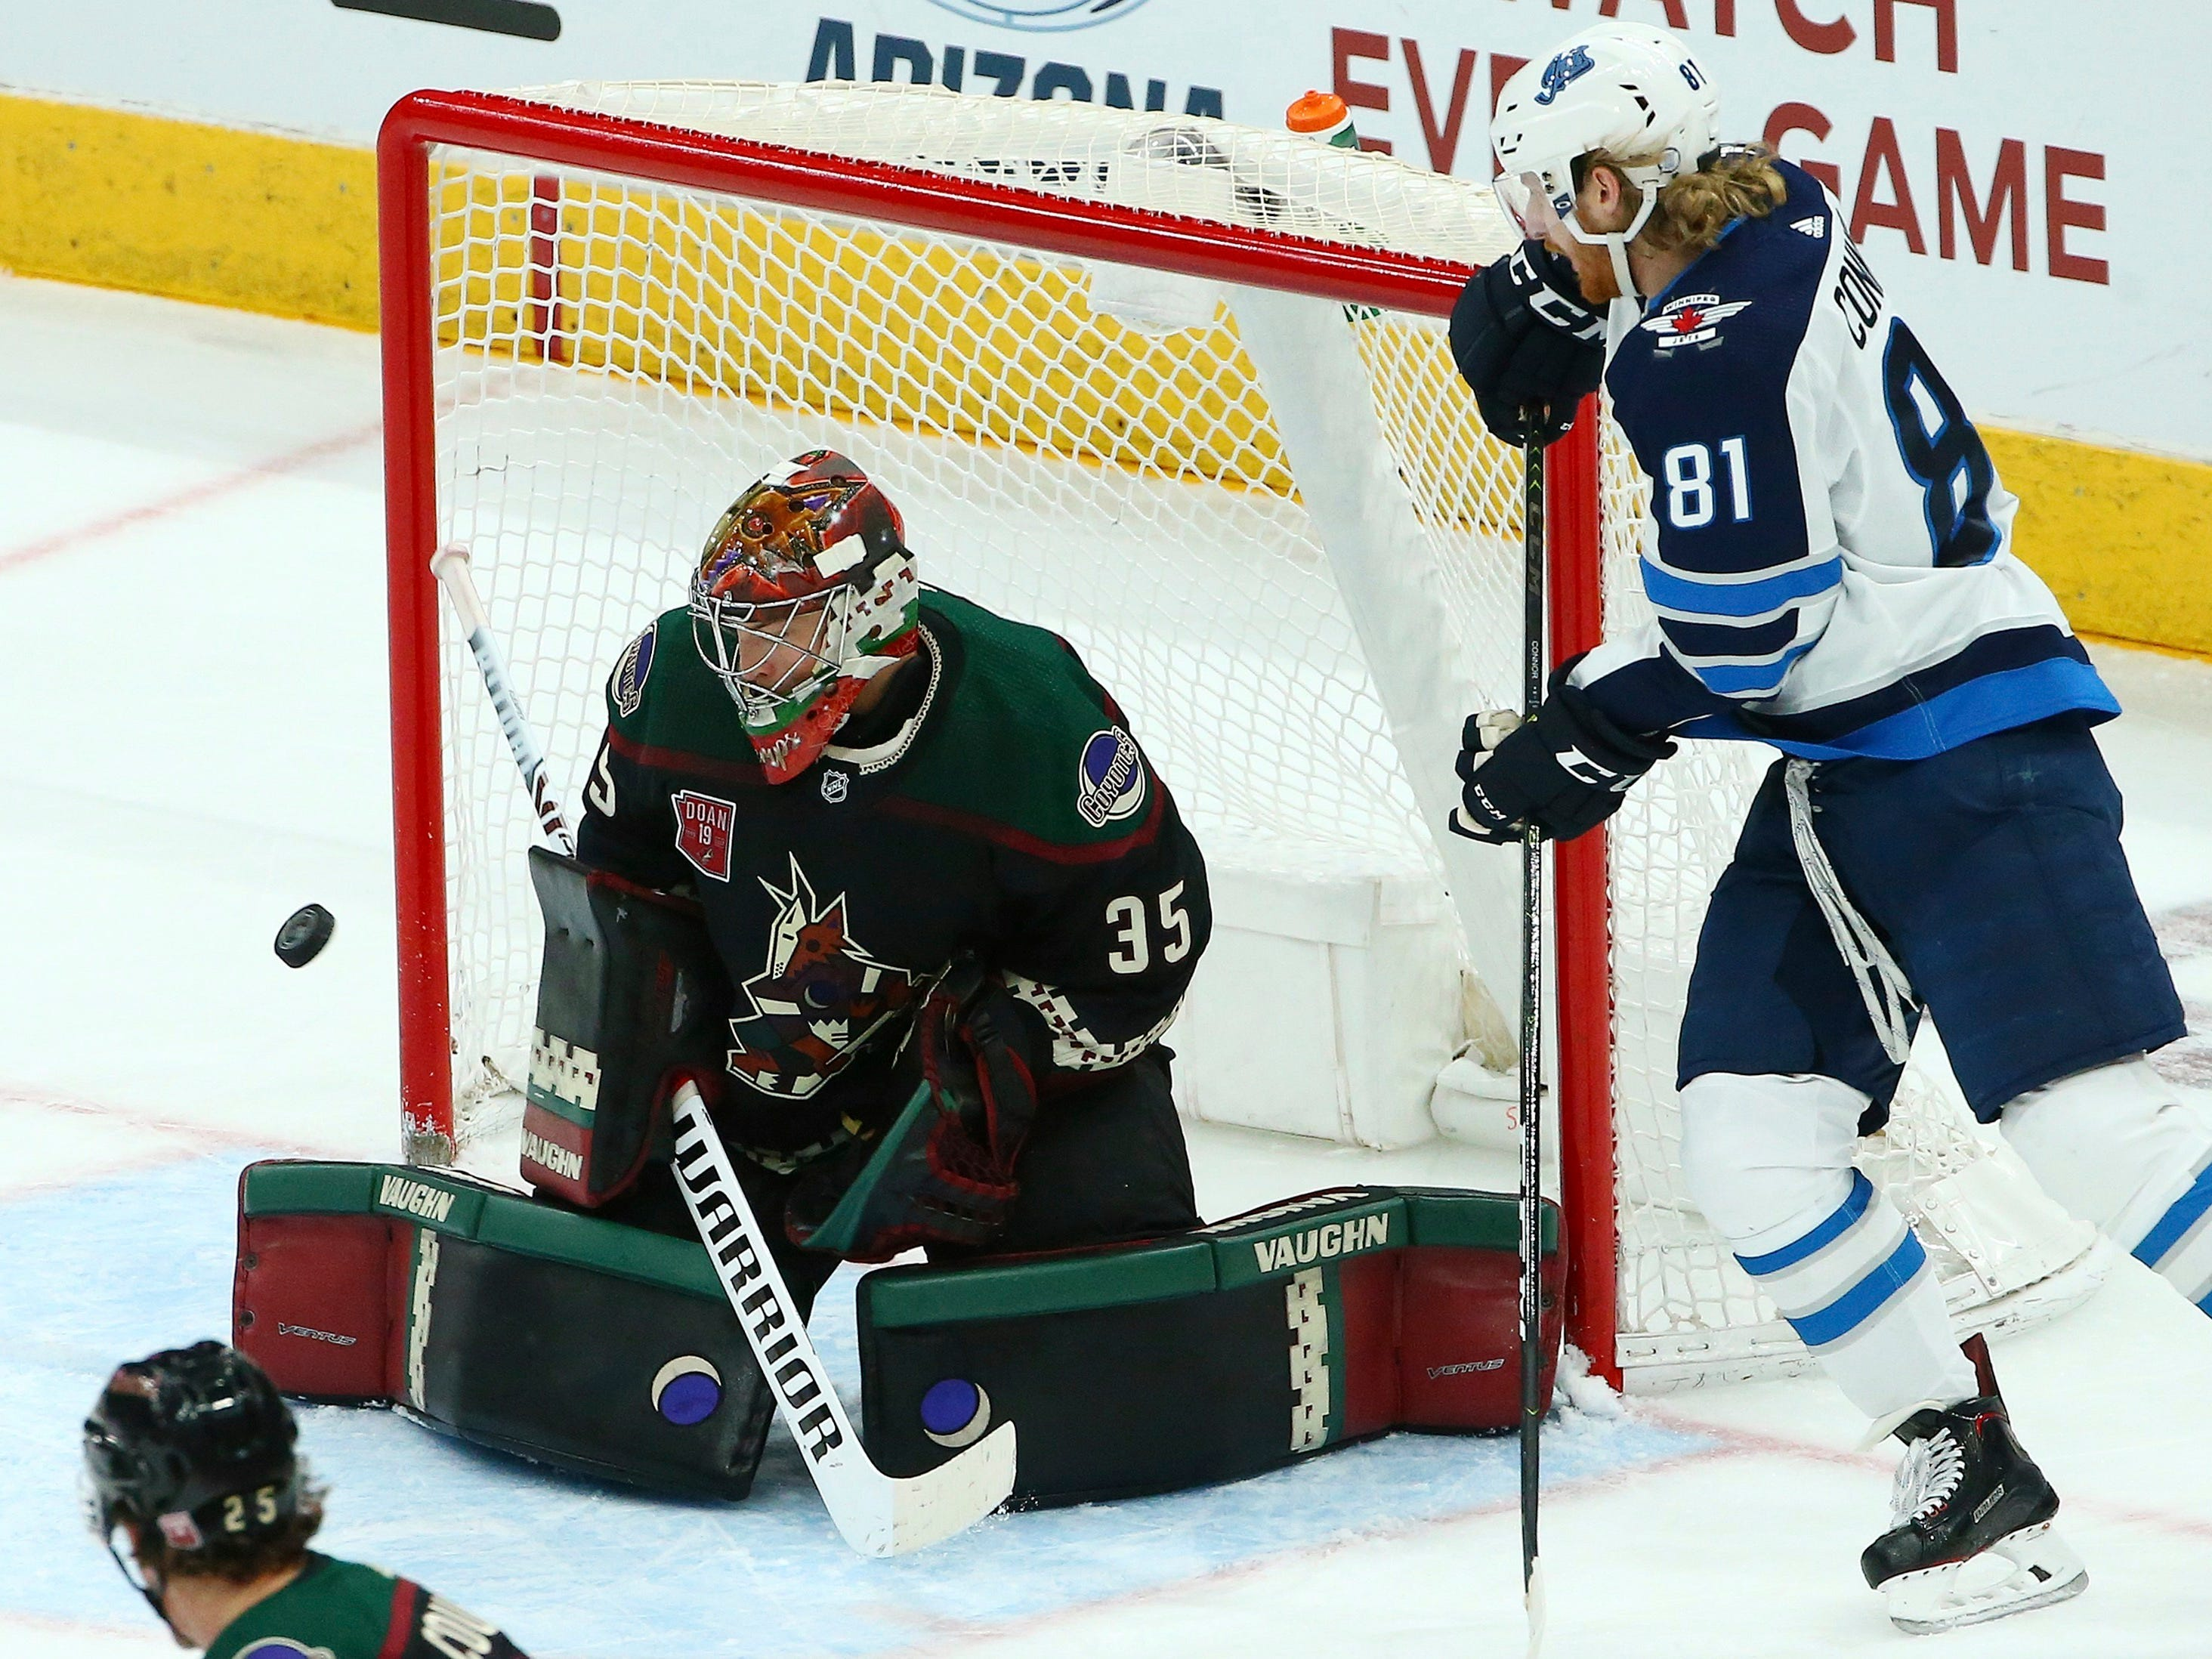 Arizona Coyotes goaltender Darcy Kuemper (35) makes a save on a shot by Winnipeg Jets left wing Kyle Connor (81) during the second period of an NHL hockey game Sunday, Feb. 24, 2019, in Glendale, Ariz.